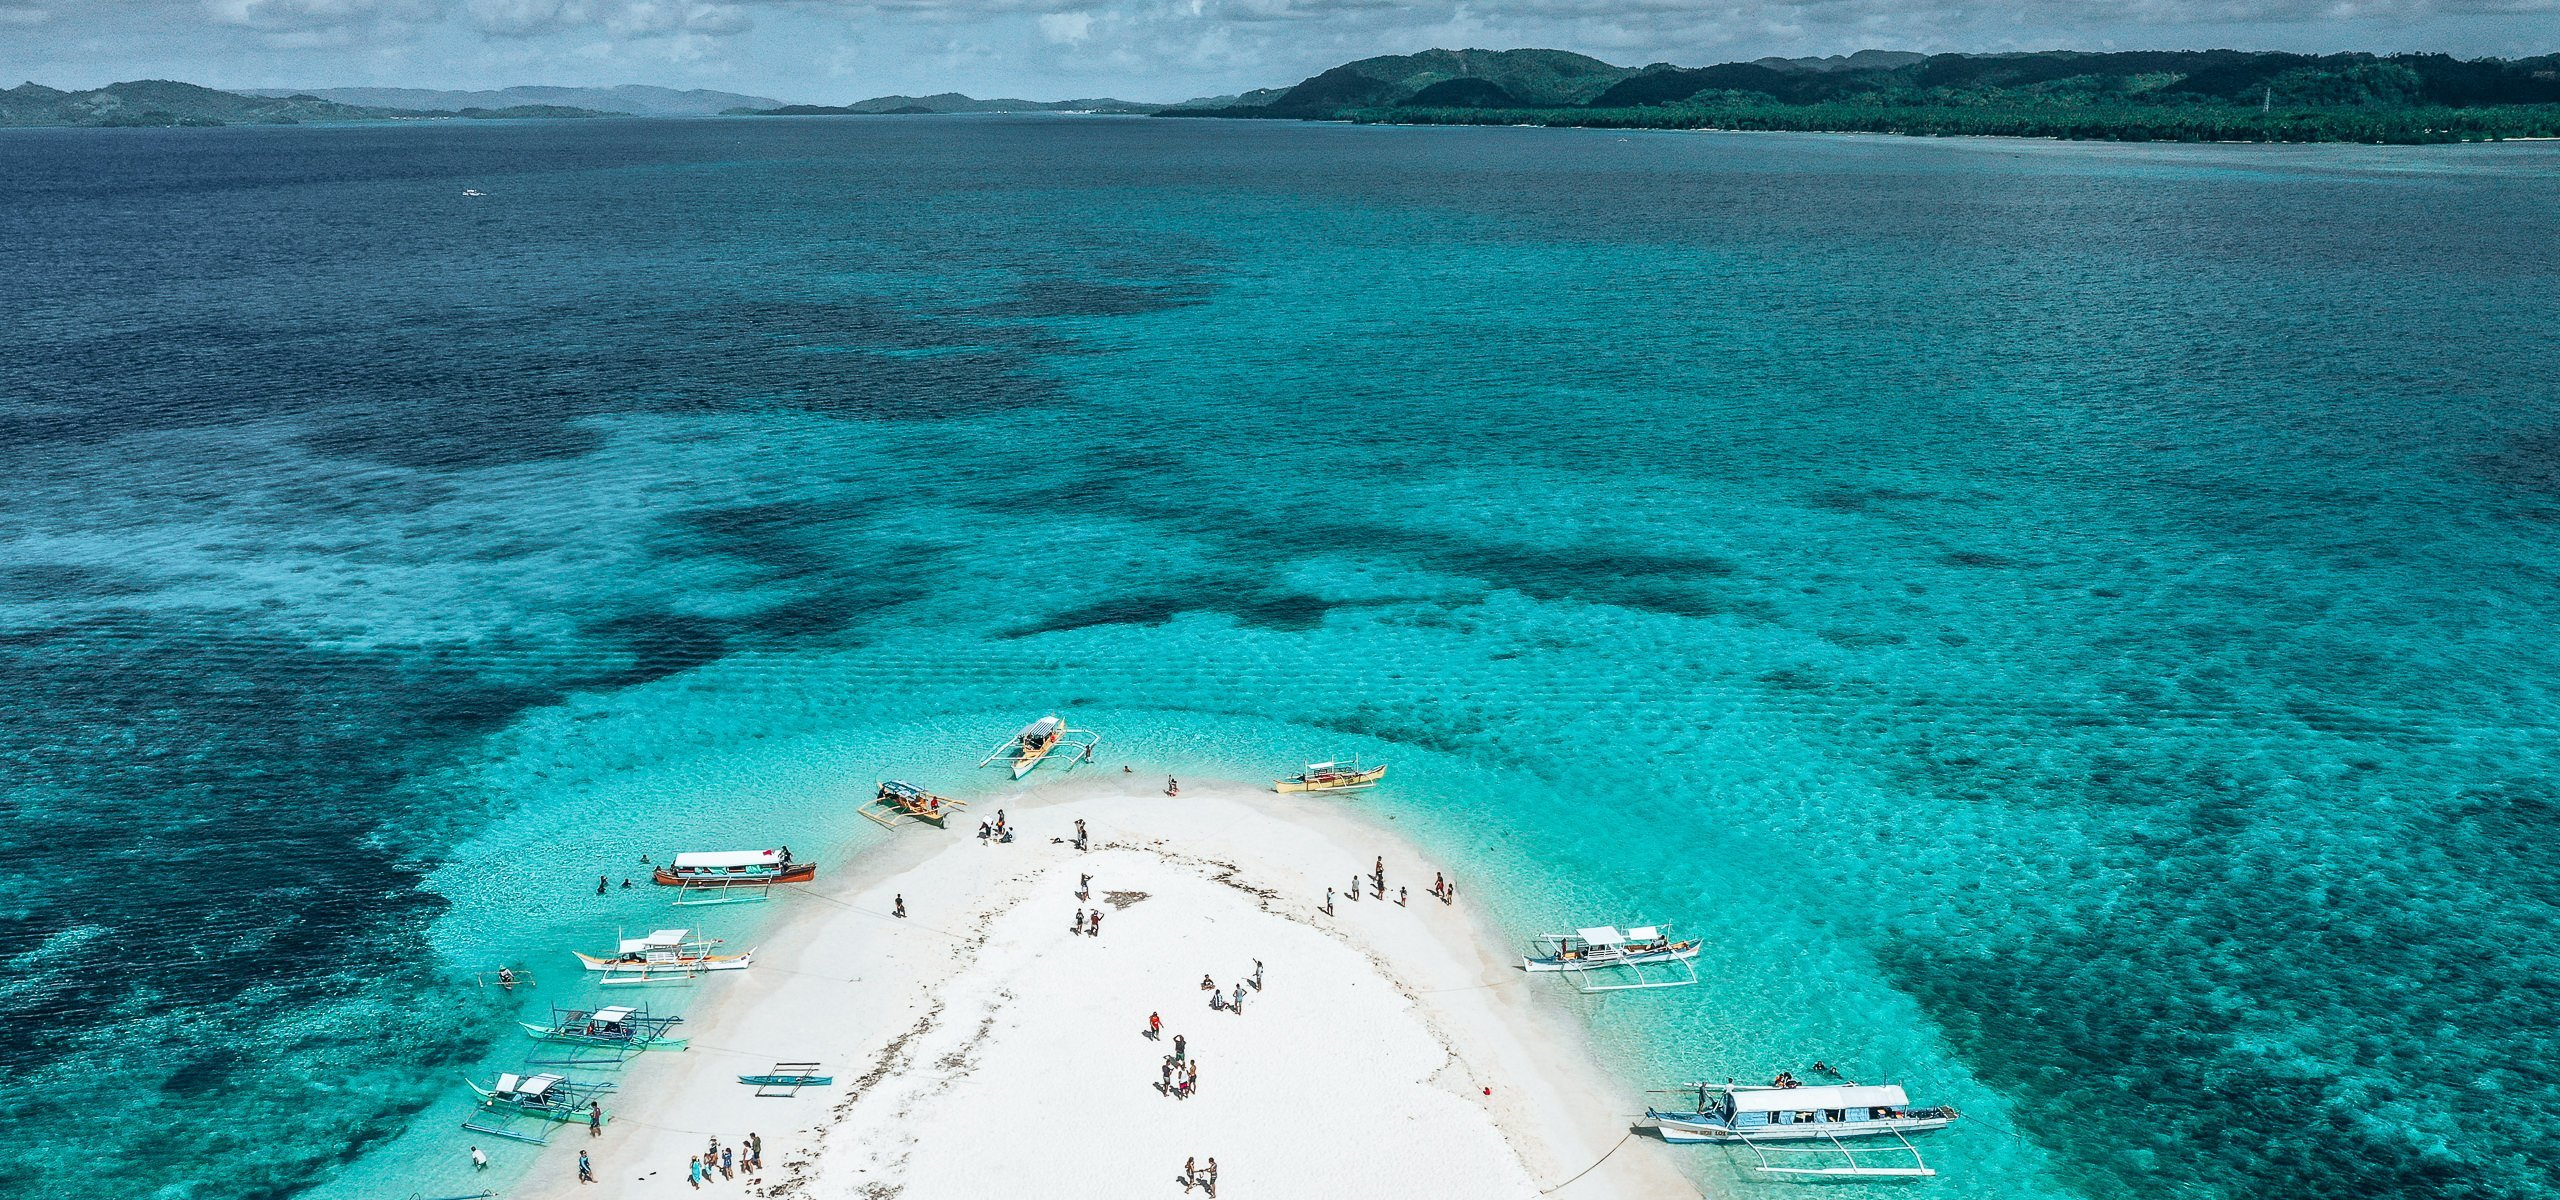 40 Stunning Photos That Will Make You Want To Visit The Philippines